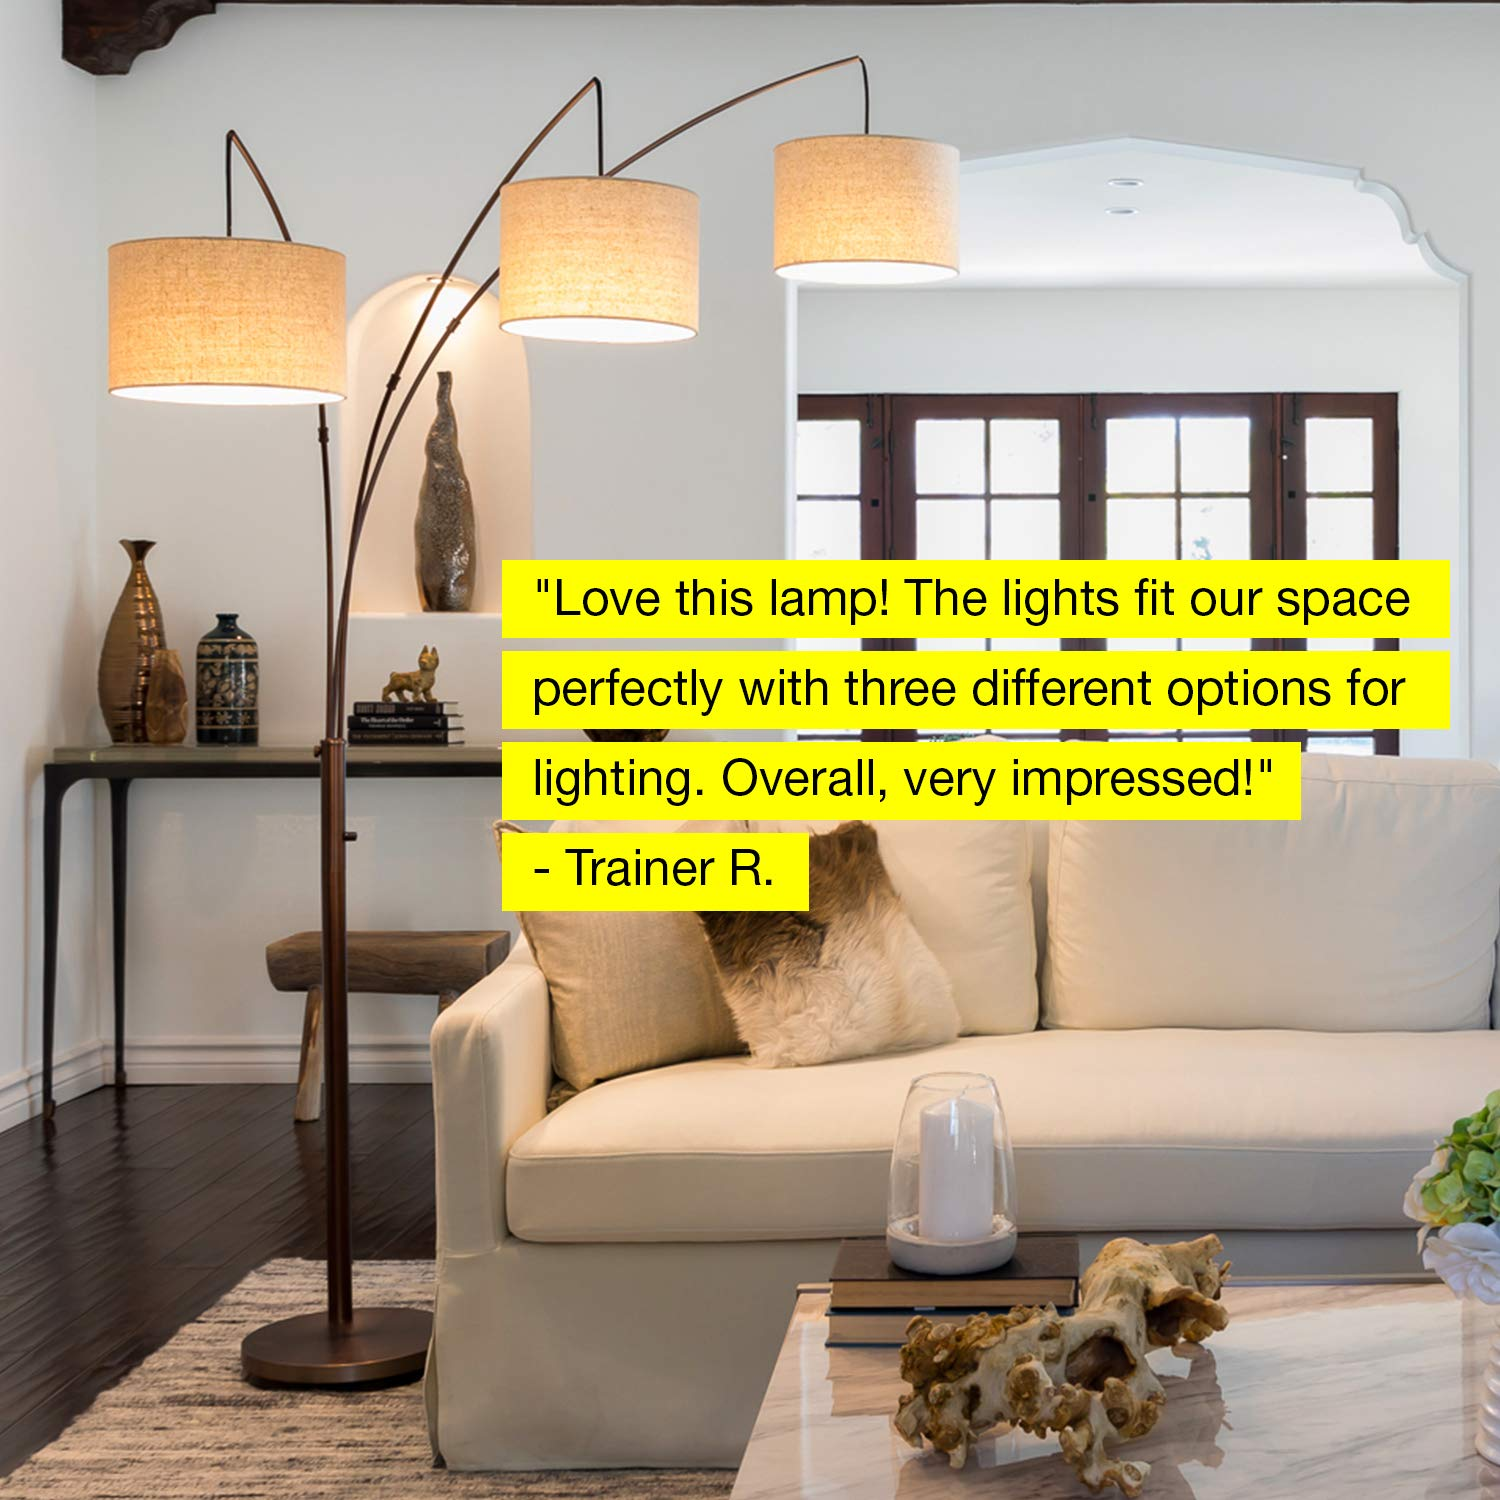 Brightech Trilage - Modern LED Arc Floor Lamp with Marble Base - Free Standing Behind The Couch Lamp for Living Room - 3 Hanging Lights, Great for Reading - Oil Rubbed Bronze by Brightech (Image #4)